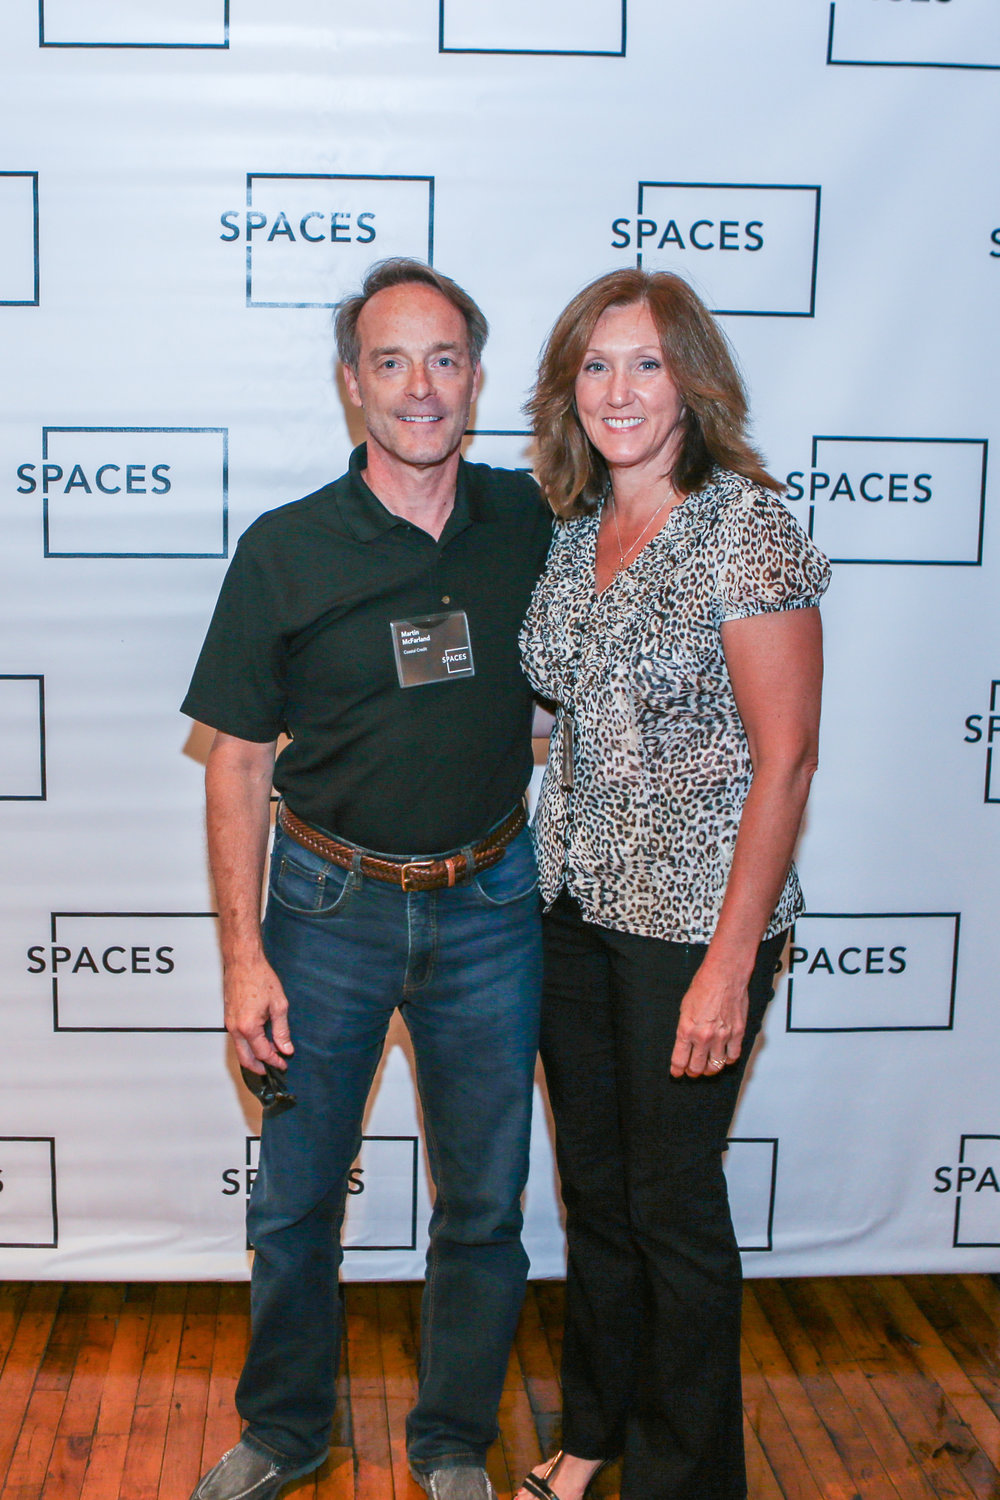 A-Spaces Event-117.jpg